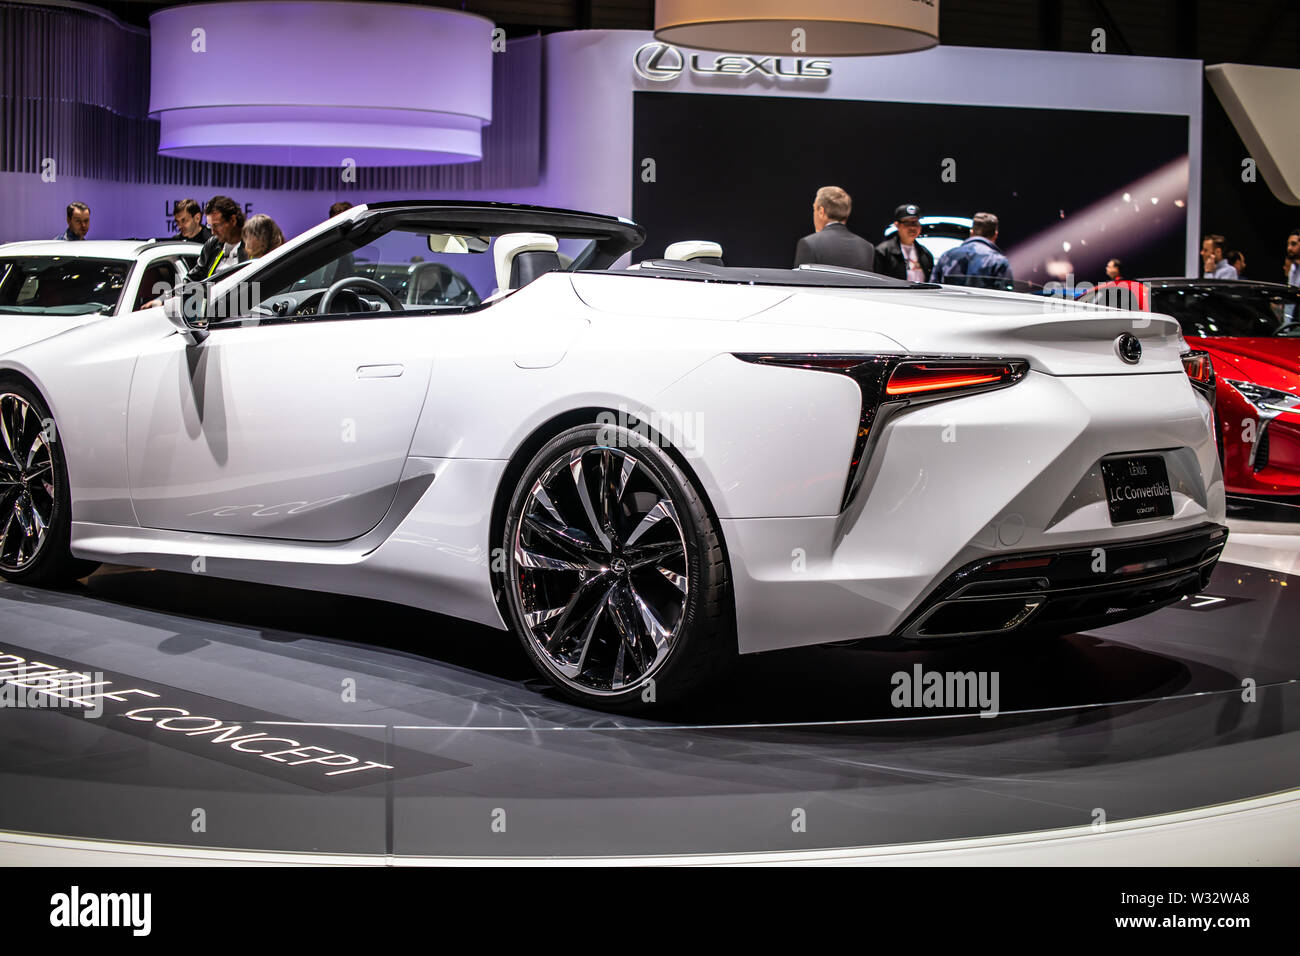 Geneva, Switzerland, March 2019 Lexus LC Convertible Concept Prototype Car, Geneva International Motor Show, produced by Japanese car maker Lexus Stock Photo